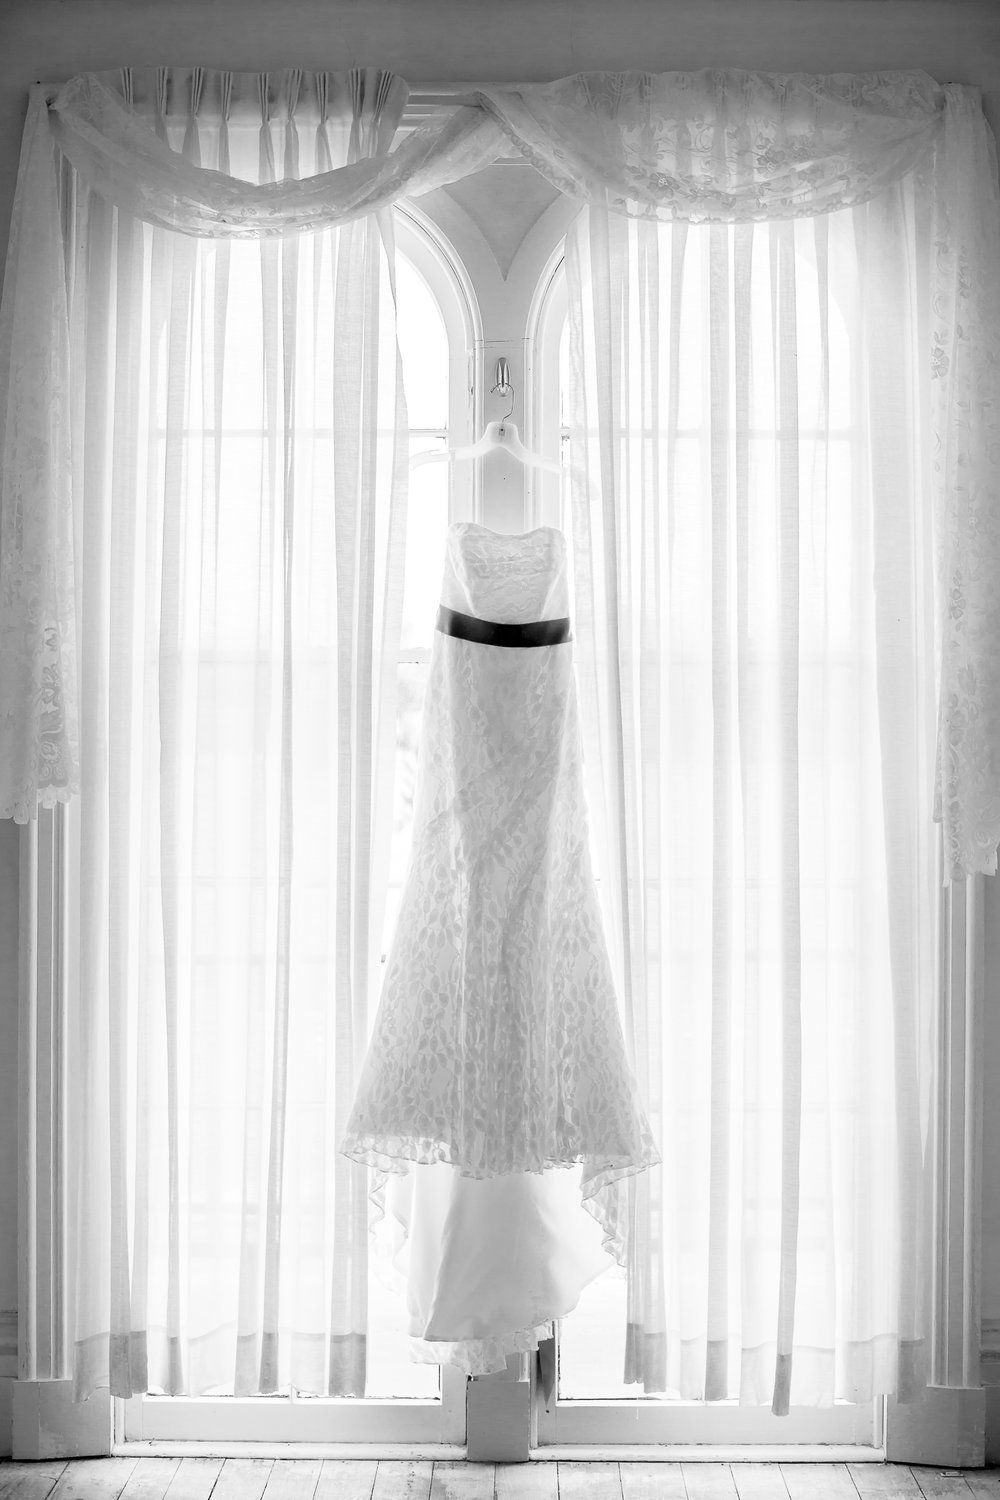 Gandjos_Tinko_BackSeatPhotography_backseatphoto12.JPG